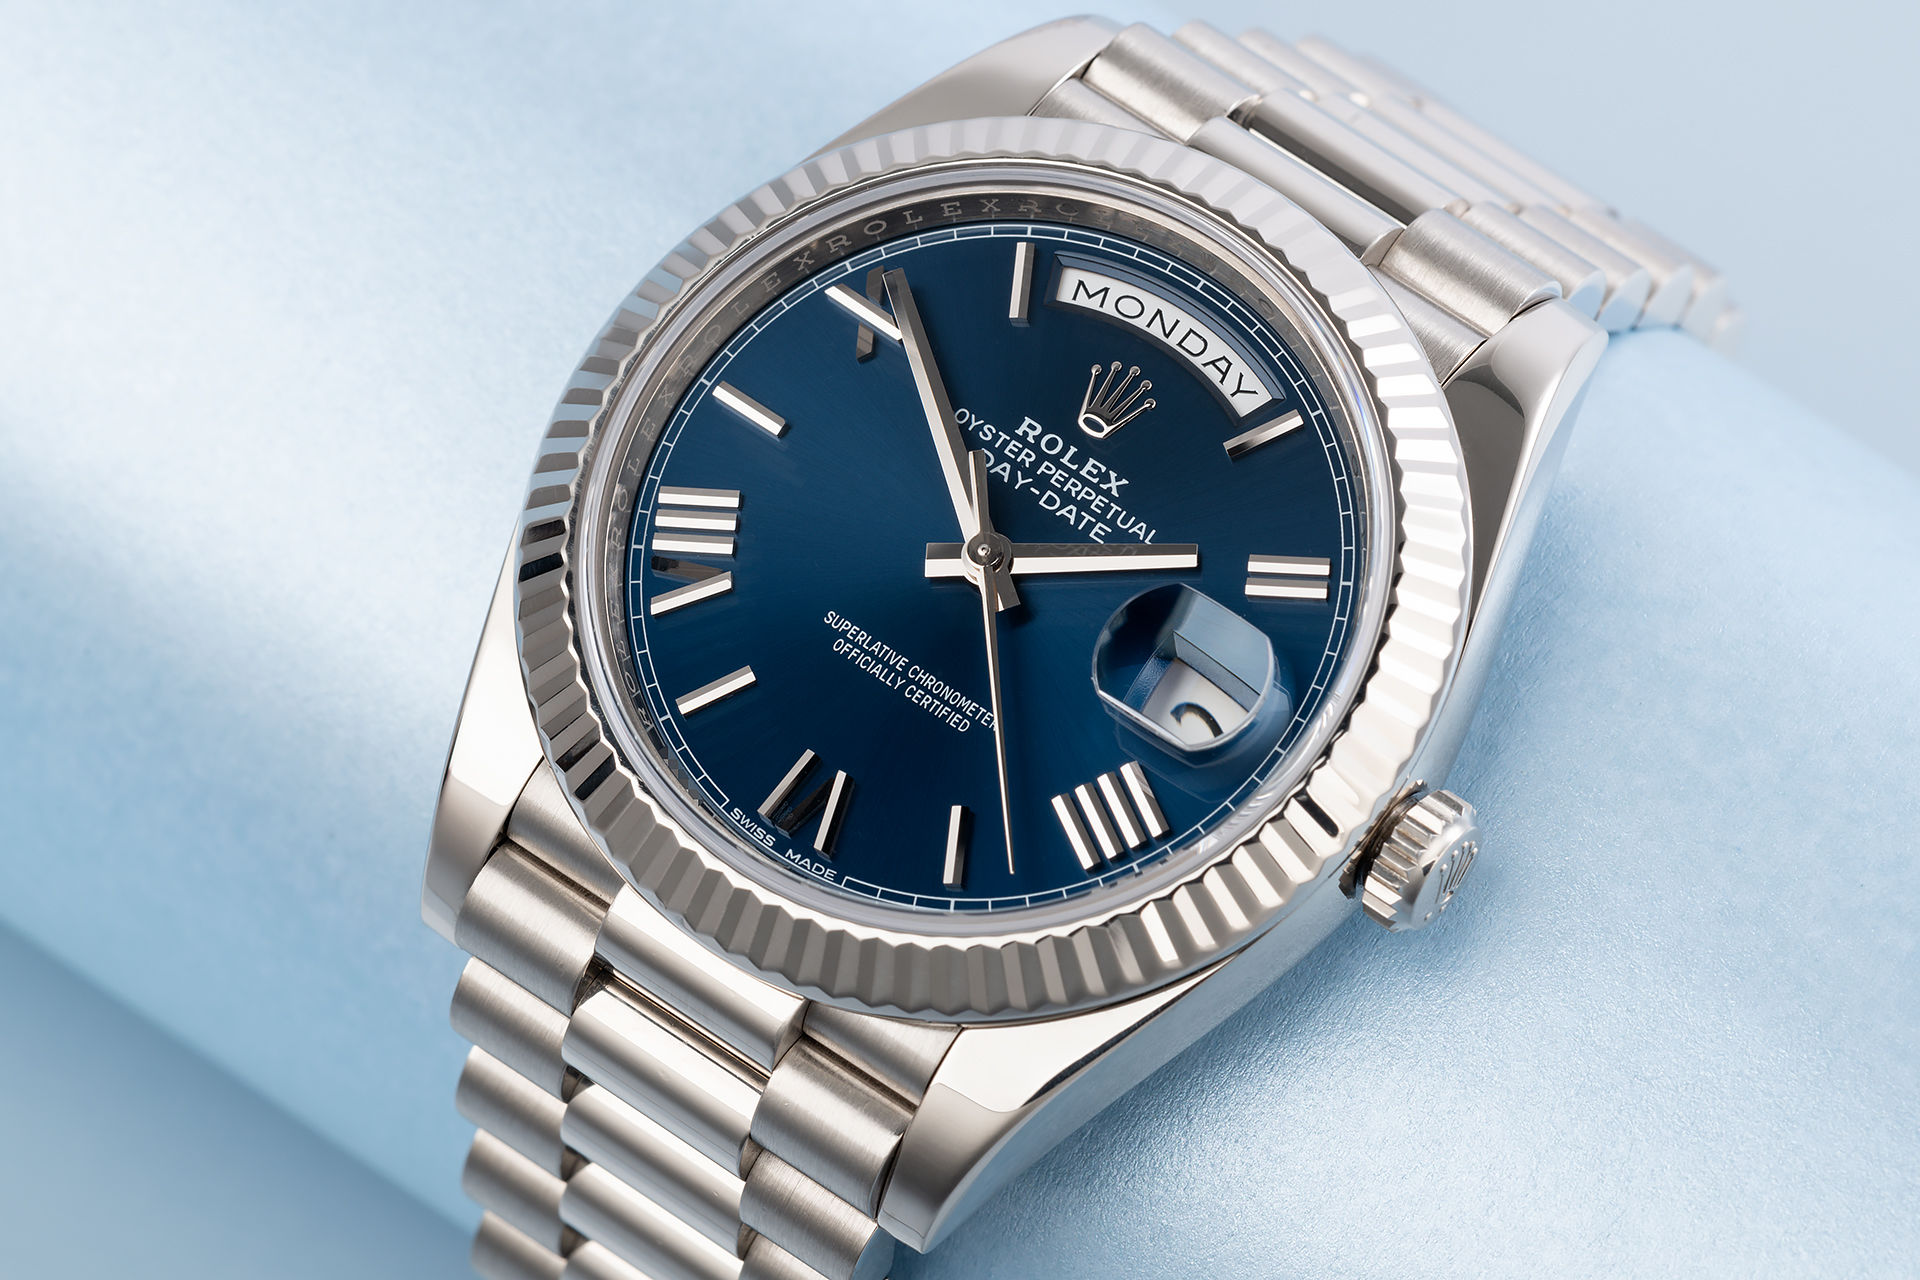 ref 228239 | 5 Year Warranty 'Blue Dial' | Rolex Day-Date